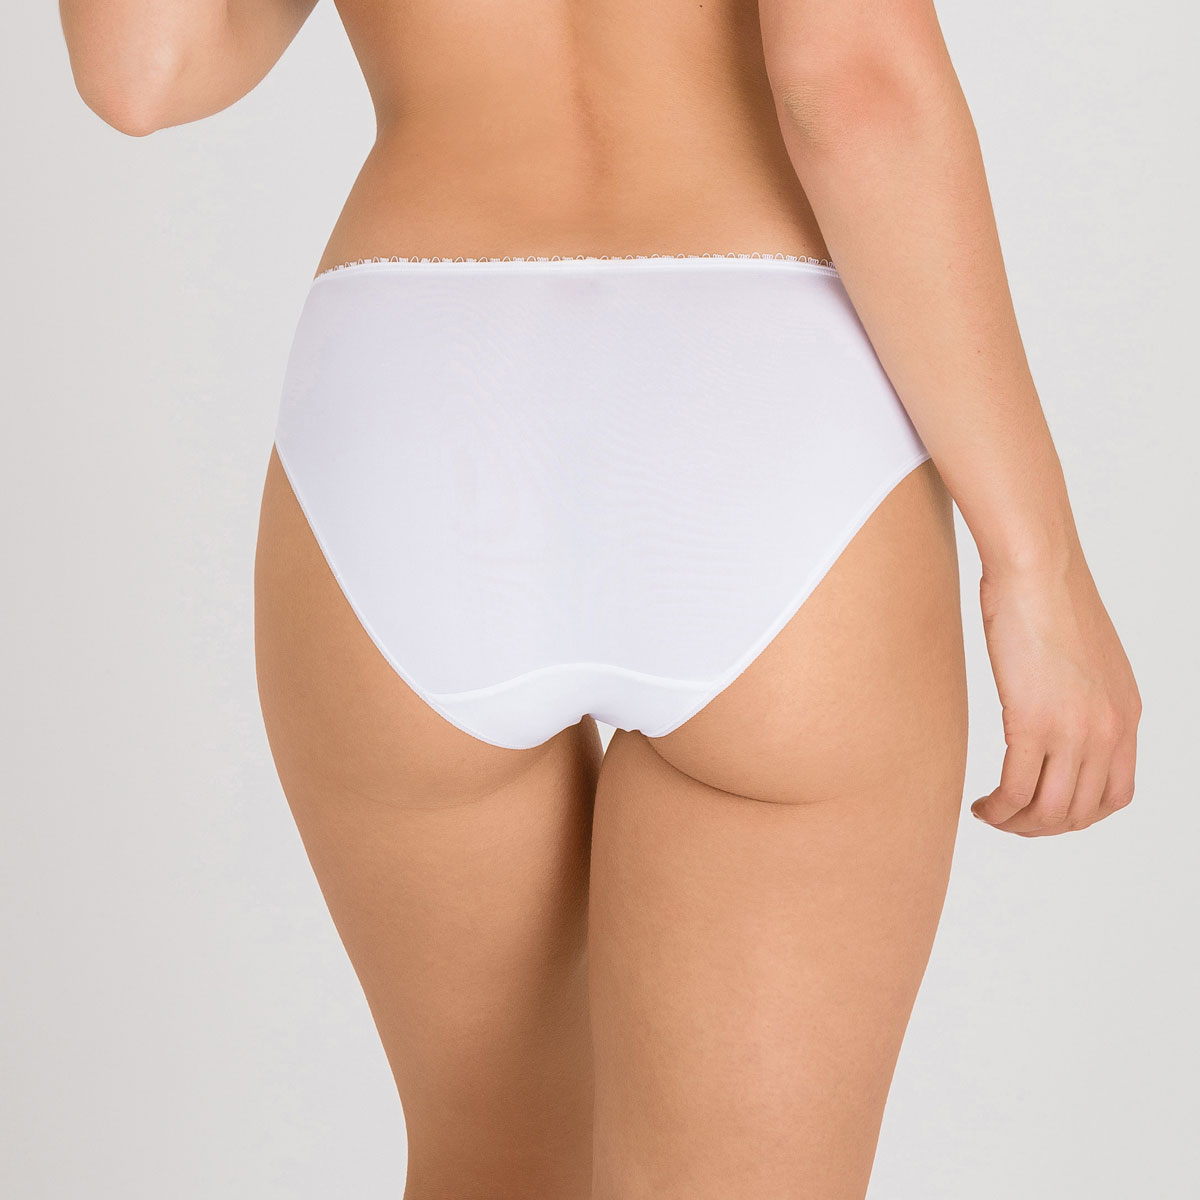 Braga mini blanca Flower Elegance, , PLAYTEX